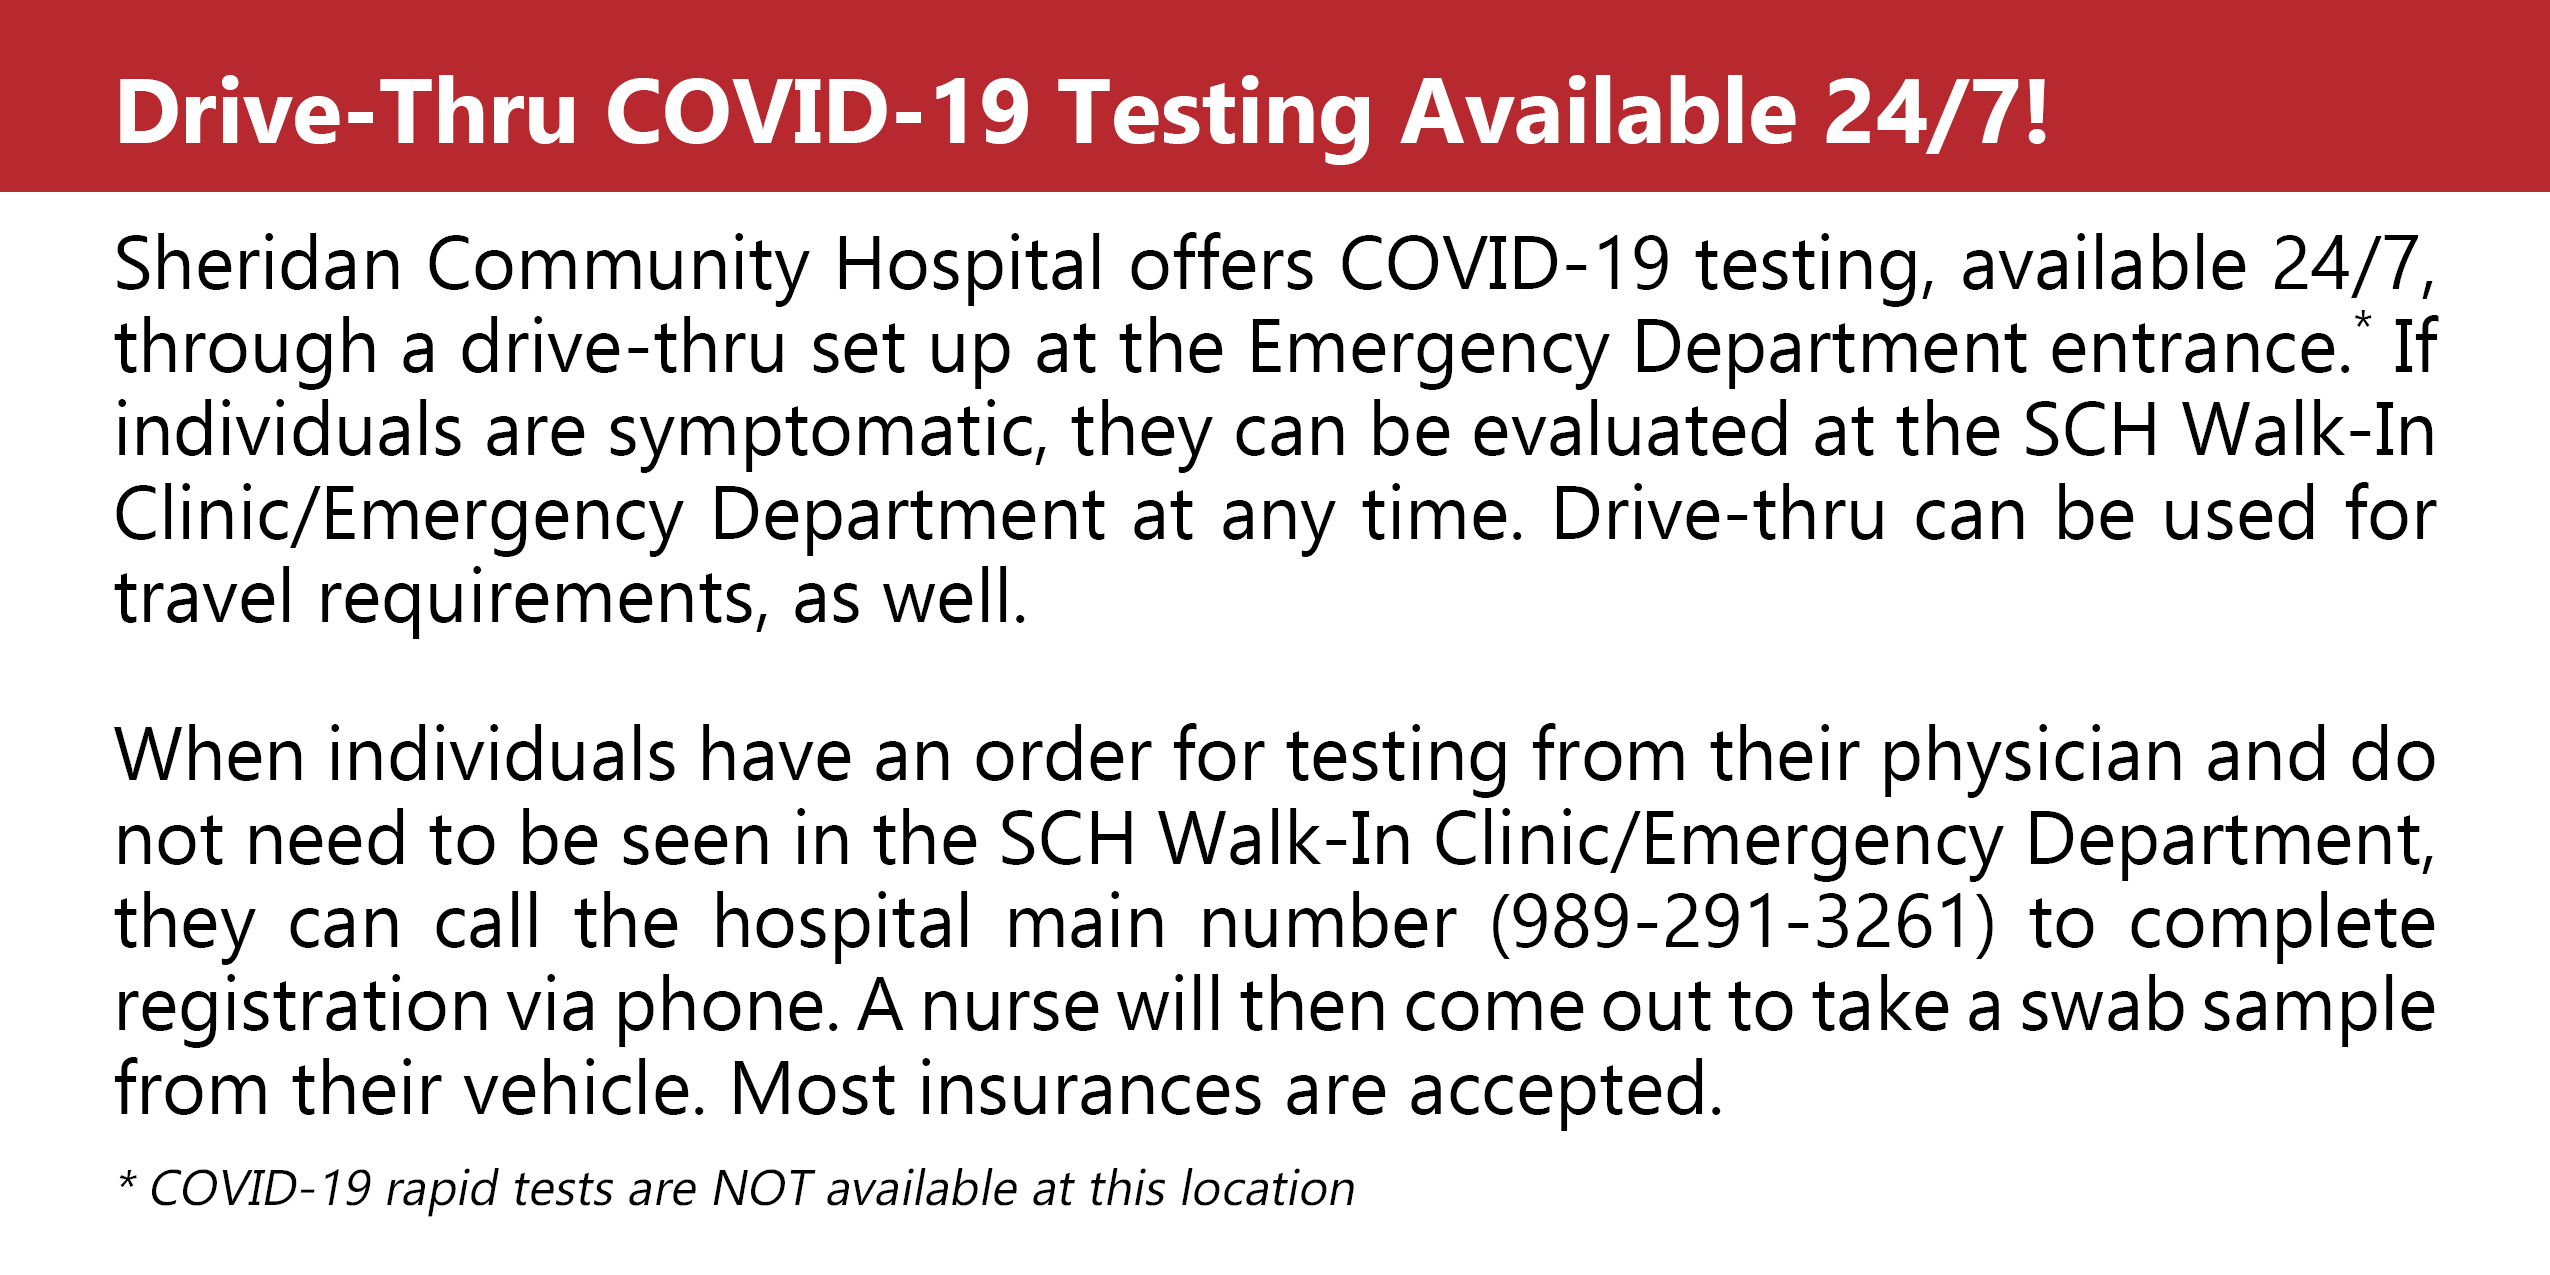 COVID-19 Testing Available 24/7